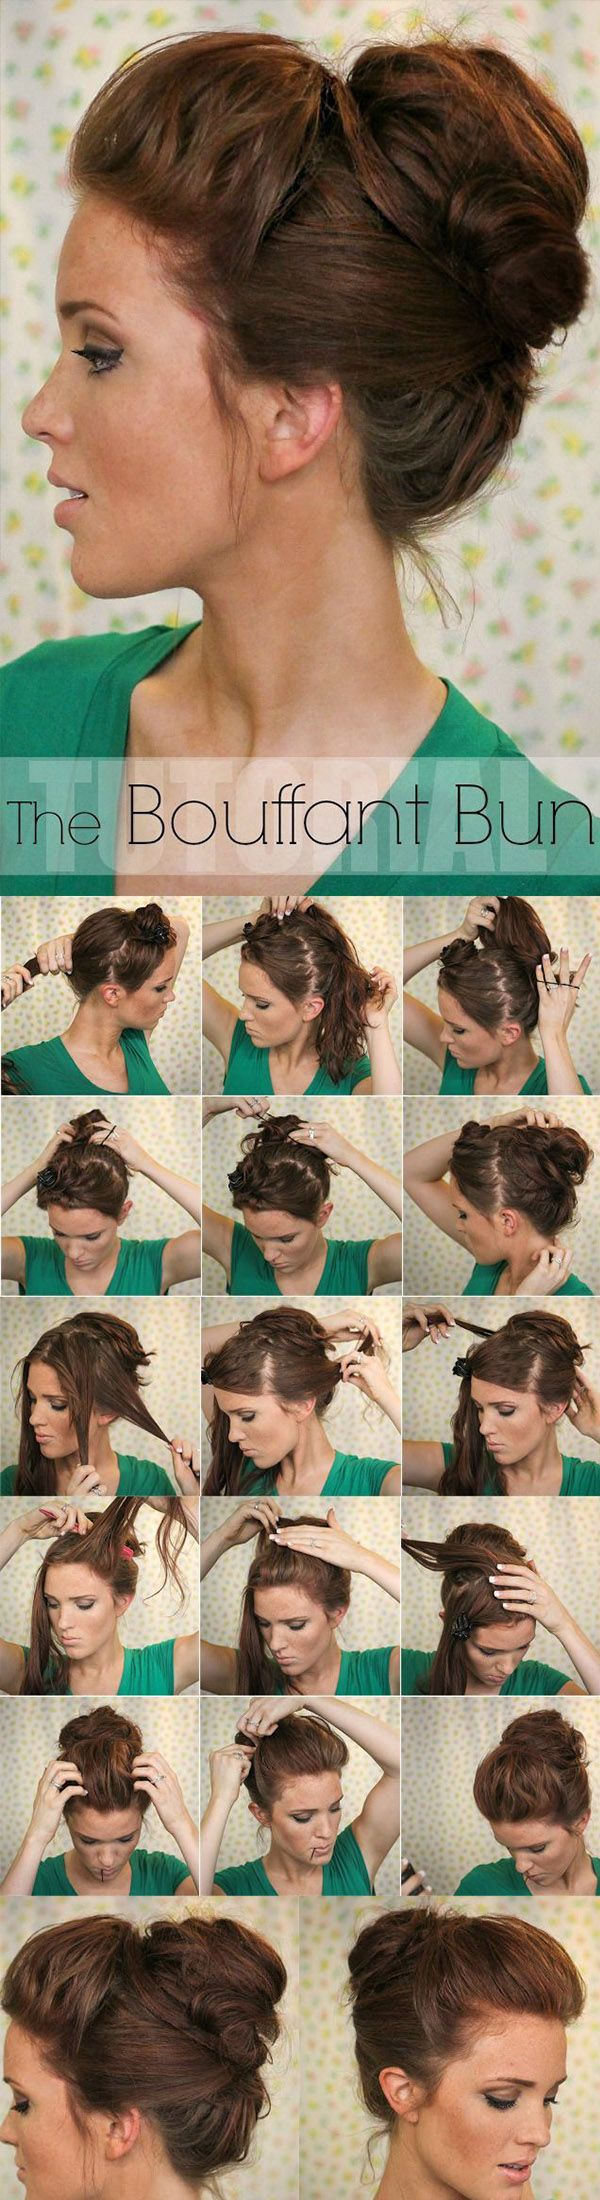 Bouffant  Bun: Cute! Plus, I think it could work with curly hair. Love that!